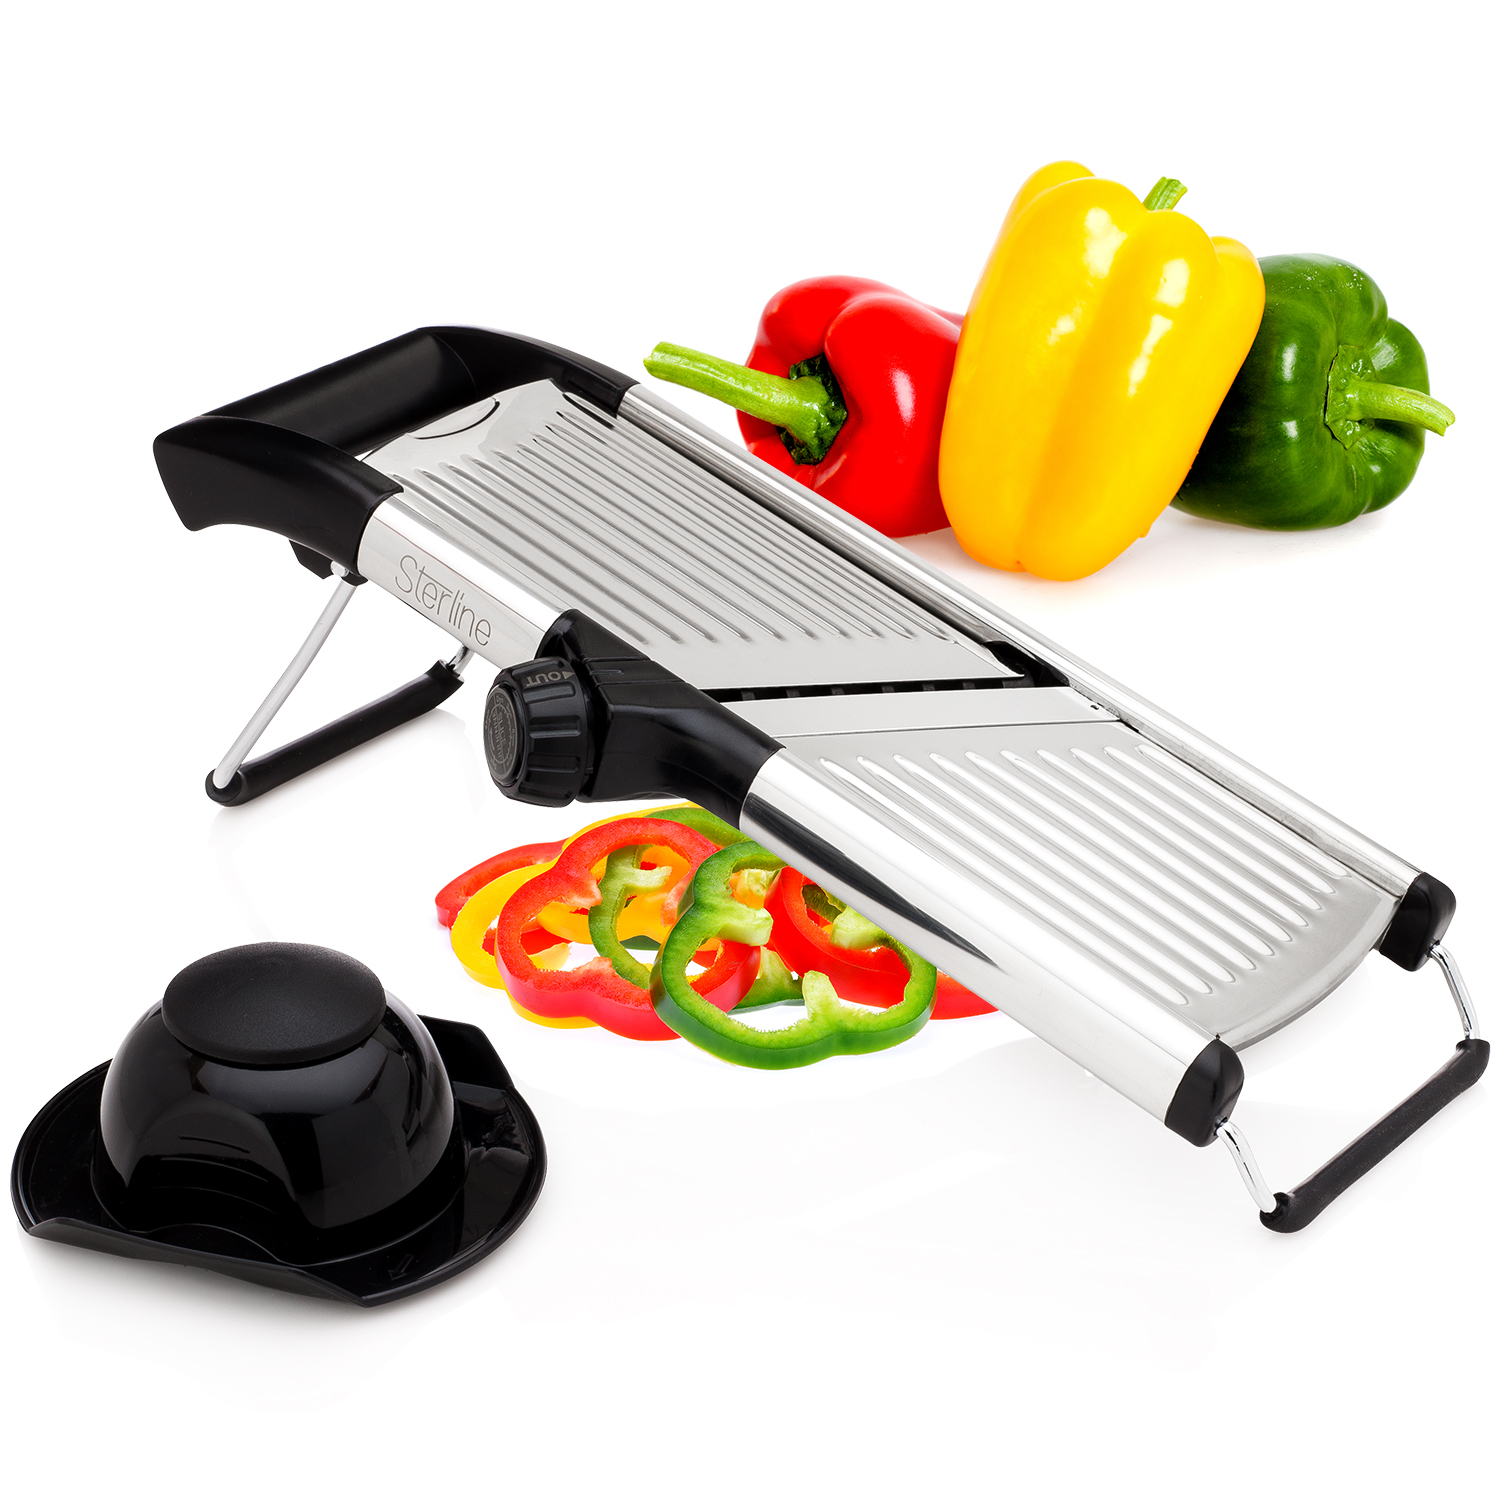 mandoline cuisine mandoline super bron coucke mandoline vegetable slicer mini mandoline. Black Bedroom Furniture Sets. Home Design Ideas